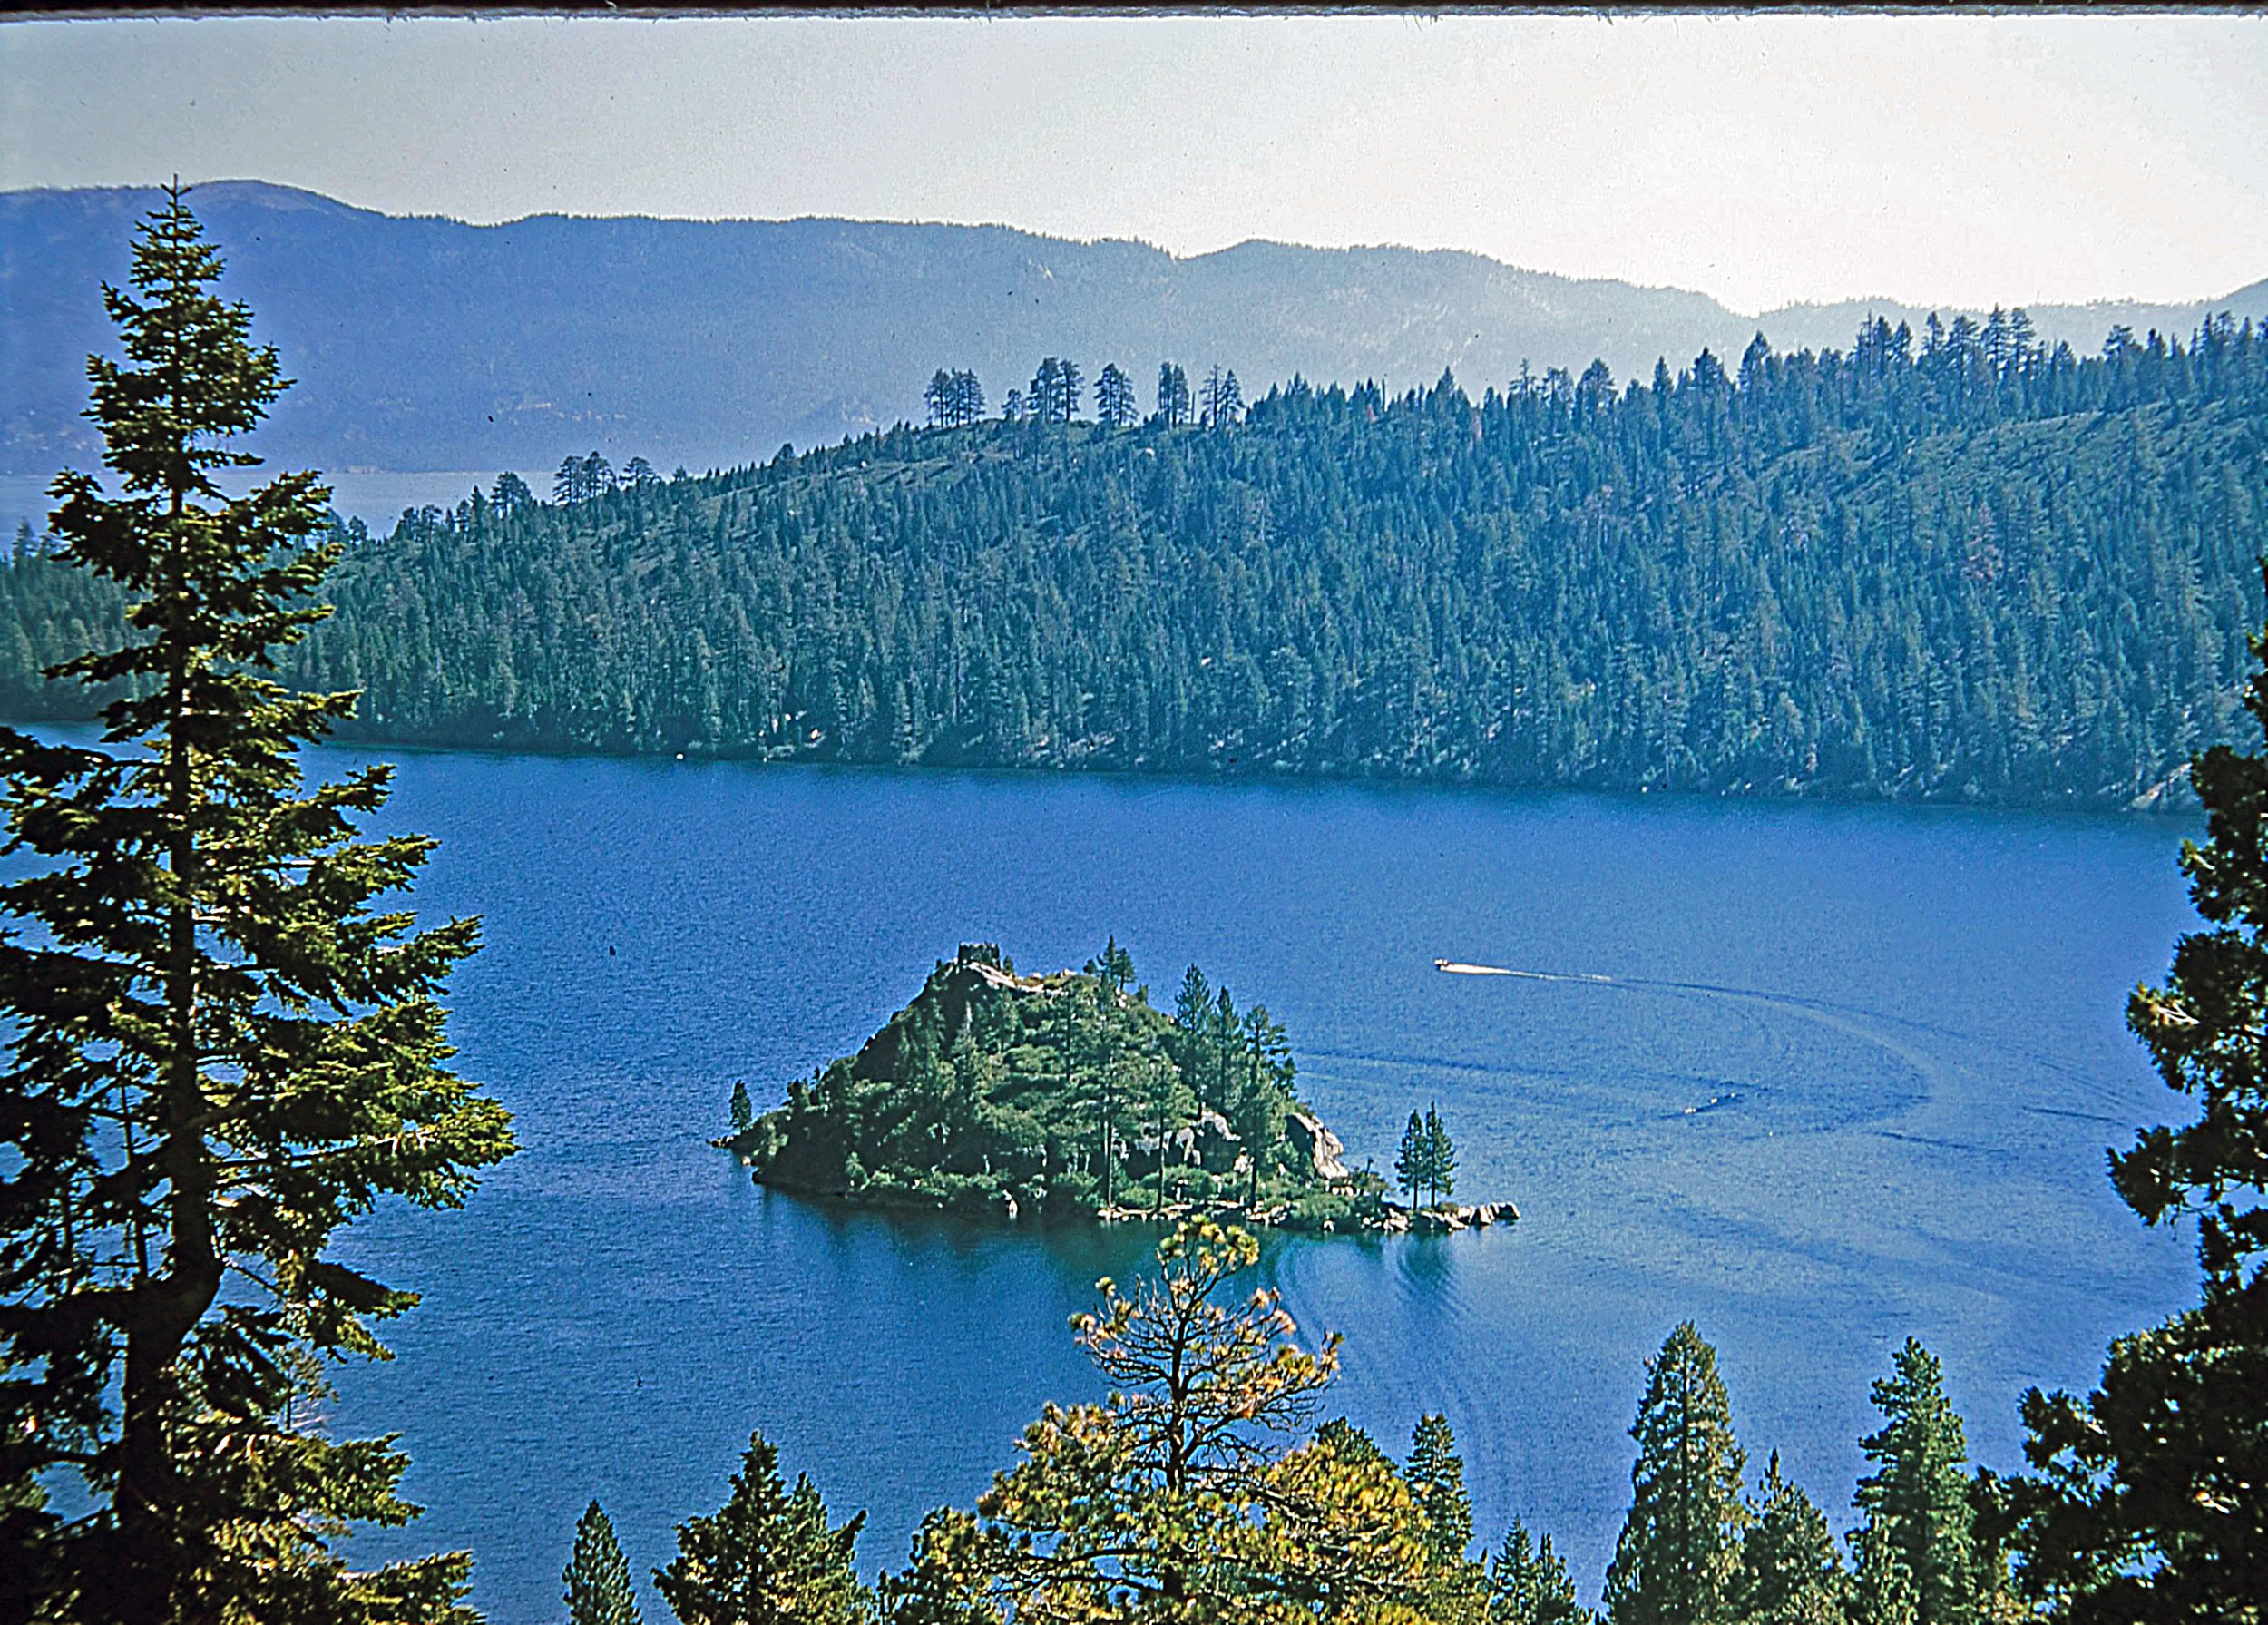 Lake Tahoe 1975 - 0050.jpg